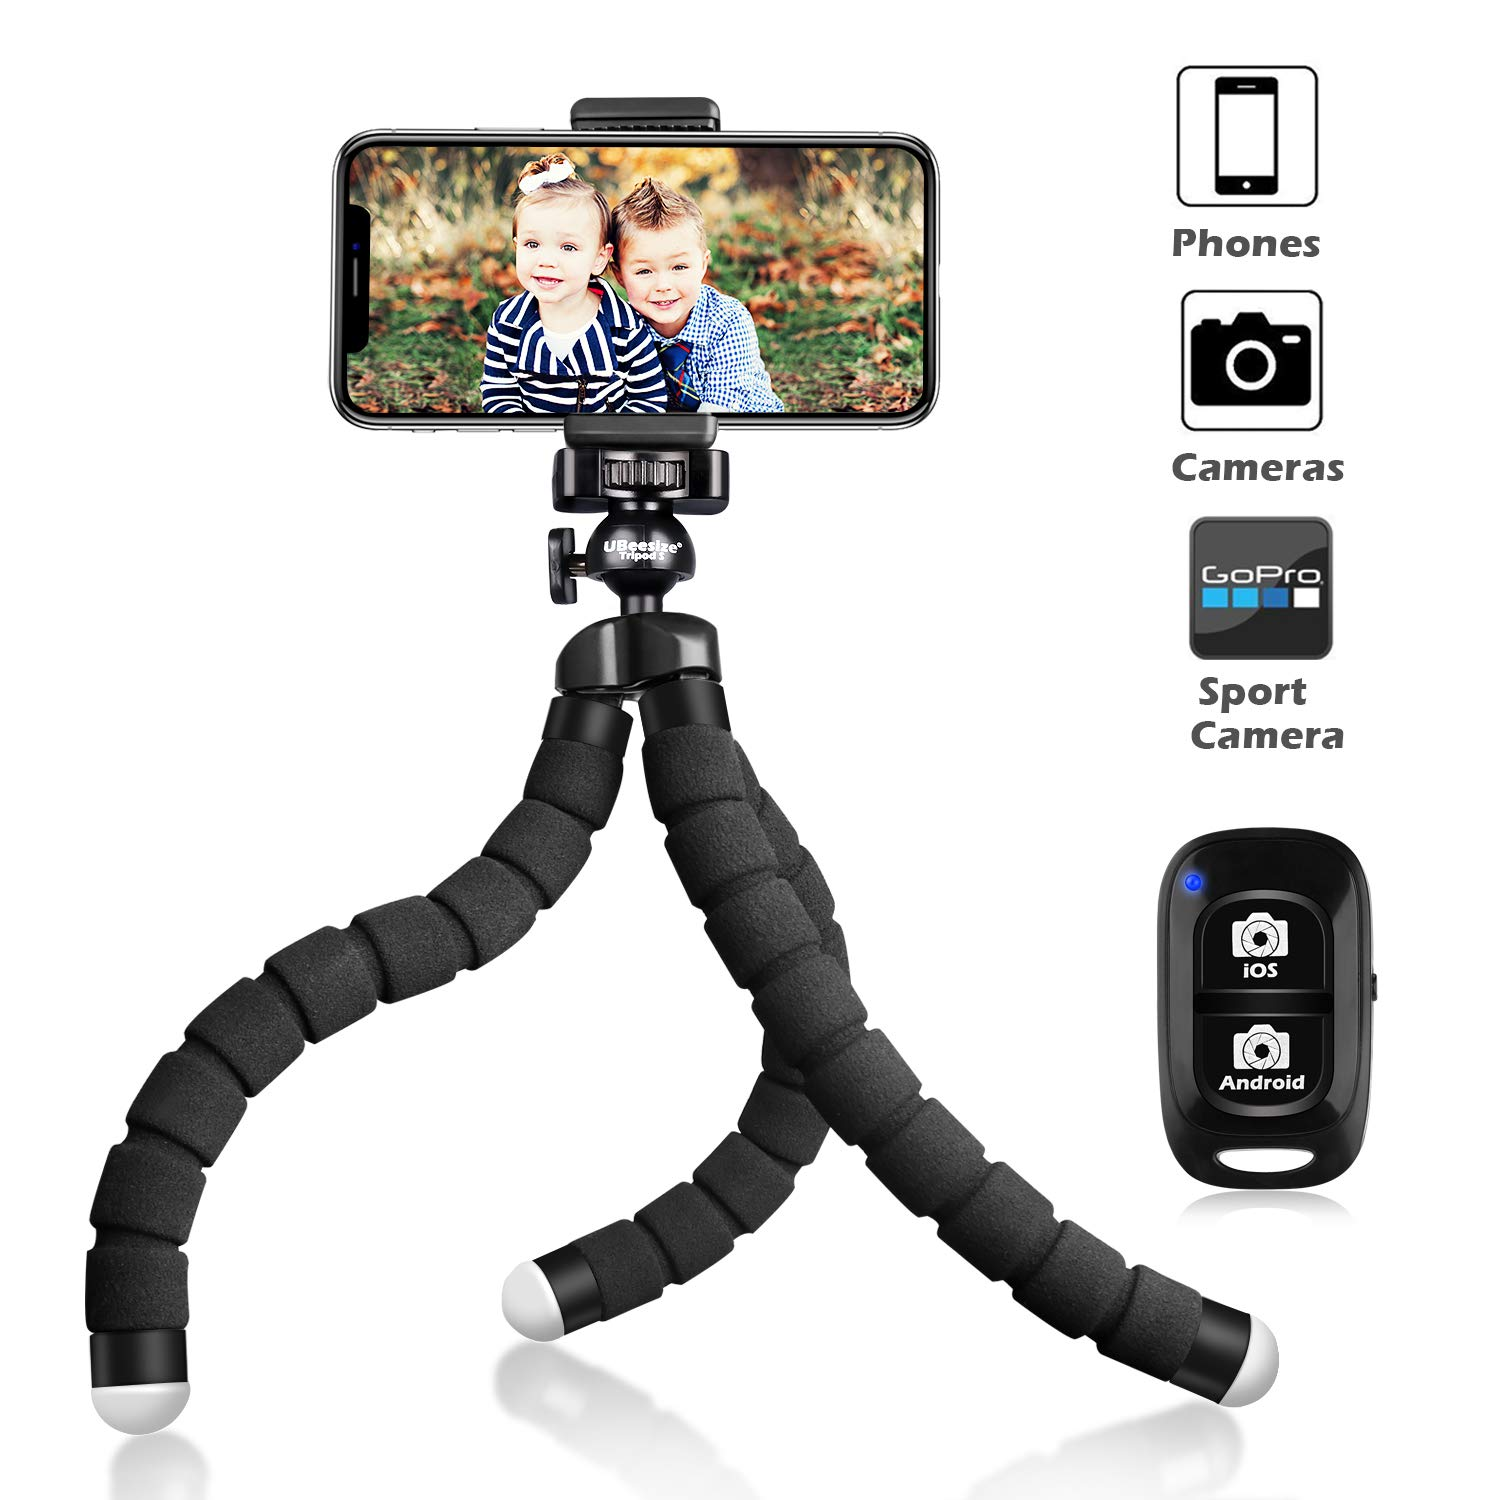 UBeesize Tripod S, Premium Phone Tripod, Flexible Tripod with Wireless Remote Shutter, Compatible with iPhone/Android Samsung, Mini Tripod Stand Holder for Camera GoPro/Mobile Cell Phone (Upgraded) by UBeesize